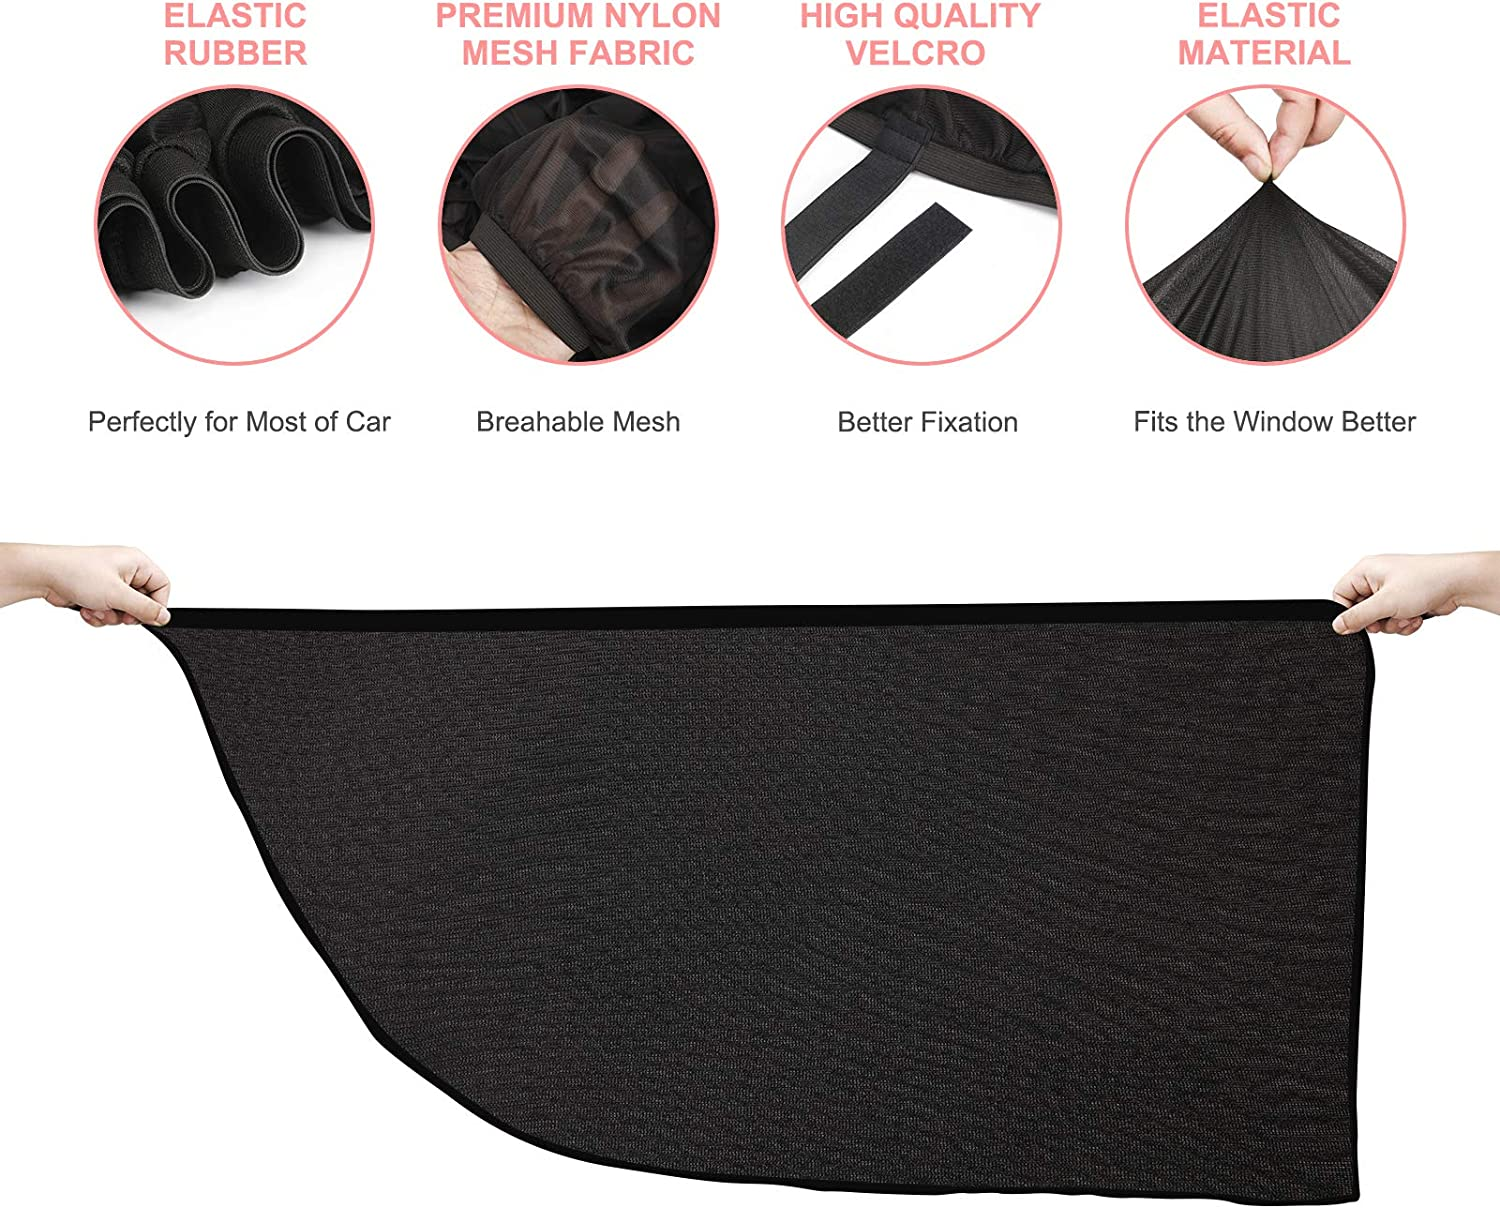 2 Pack Car Shades for Window Baby with Premium Quality Materials Blocks Over 98/% Glare,U.V Rays and Heat Protects Baby Kids and Pets Suitable for Most Vehicles Car Sun Window Shades for Kids